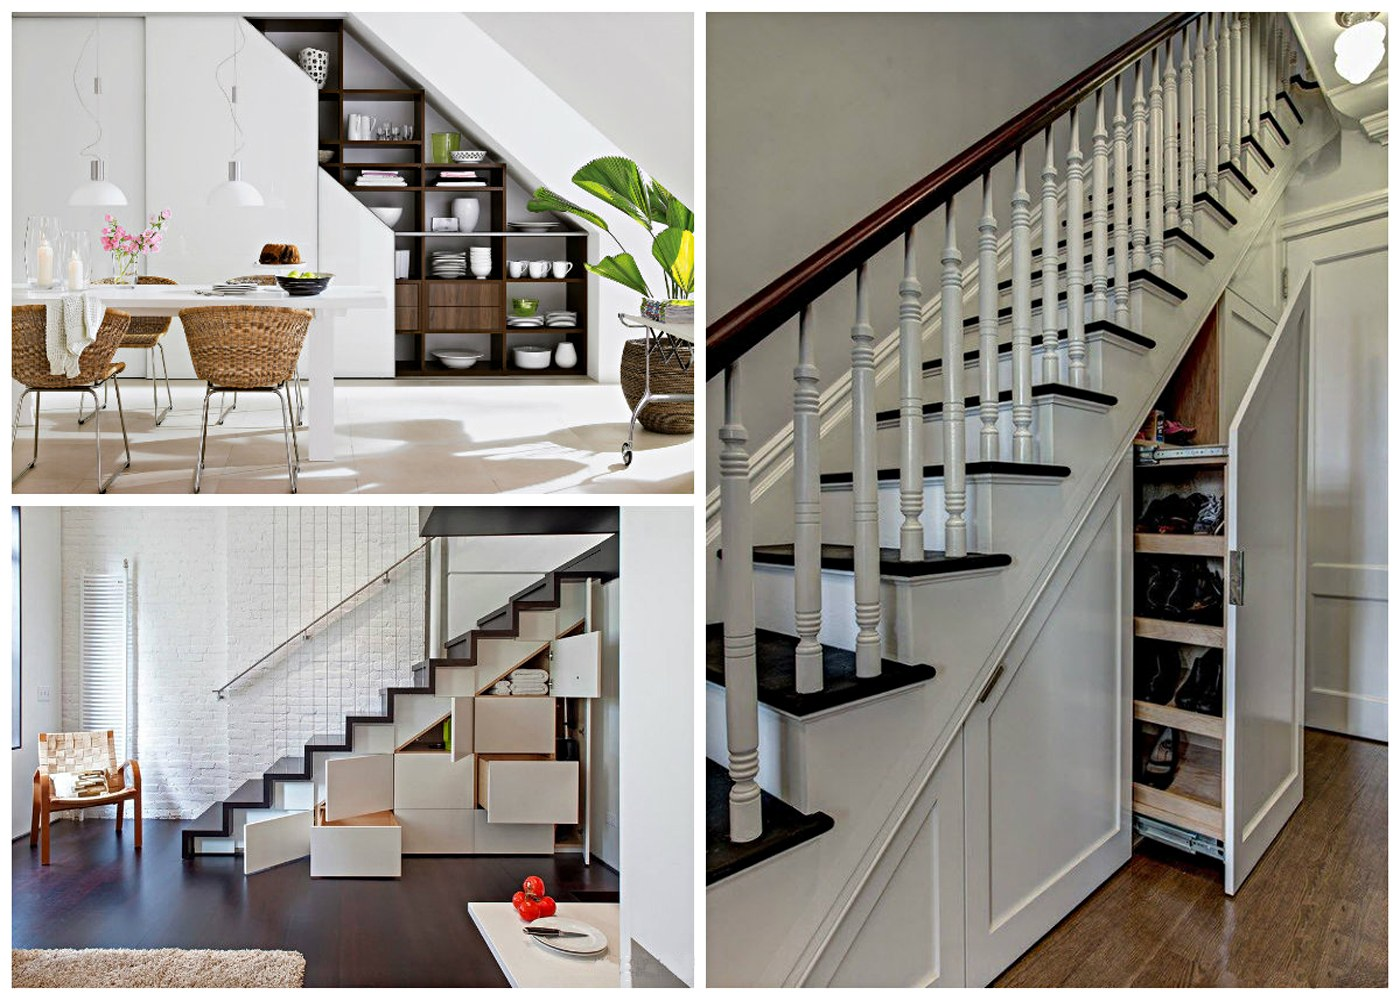 Great combination of functional space under the stairs